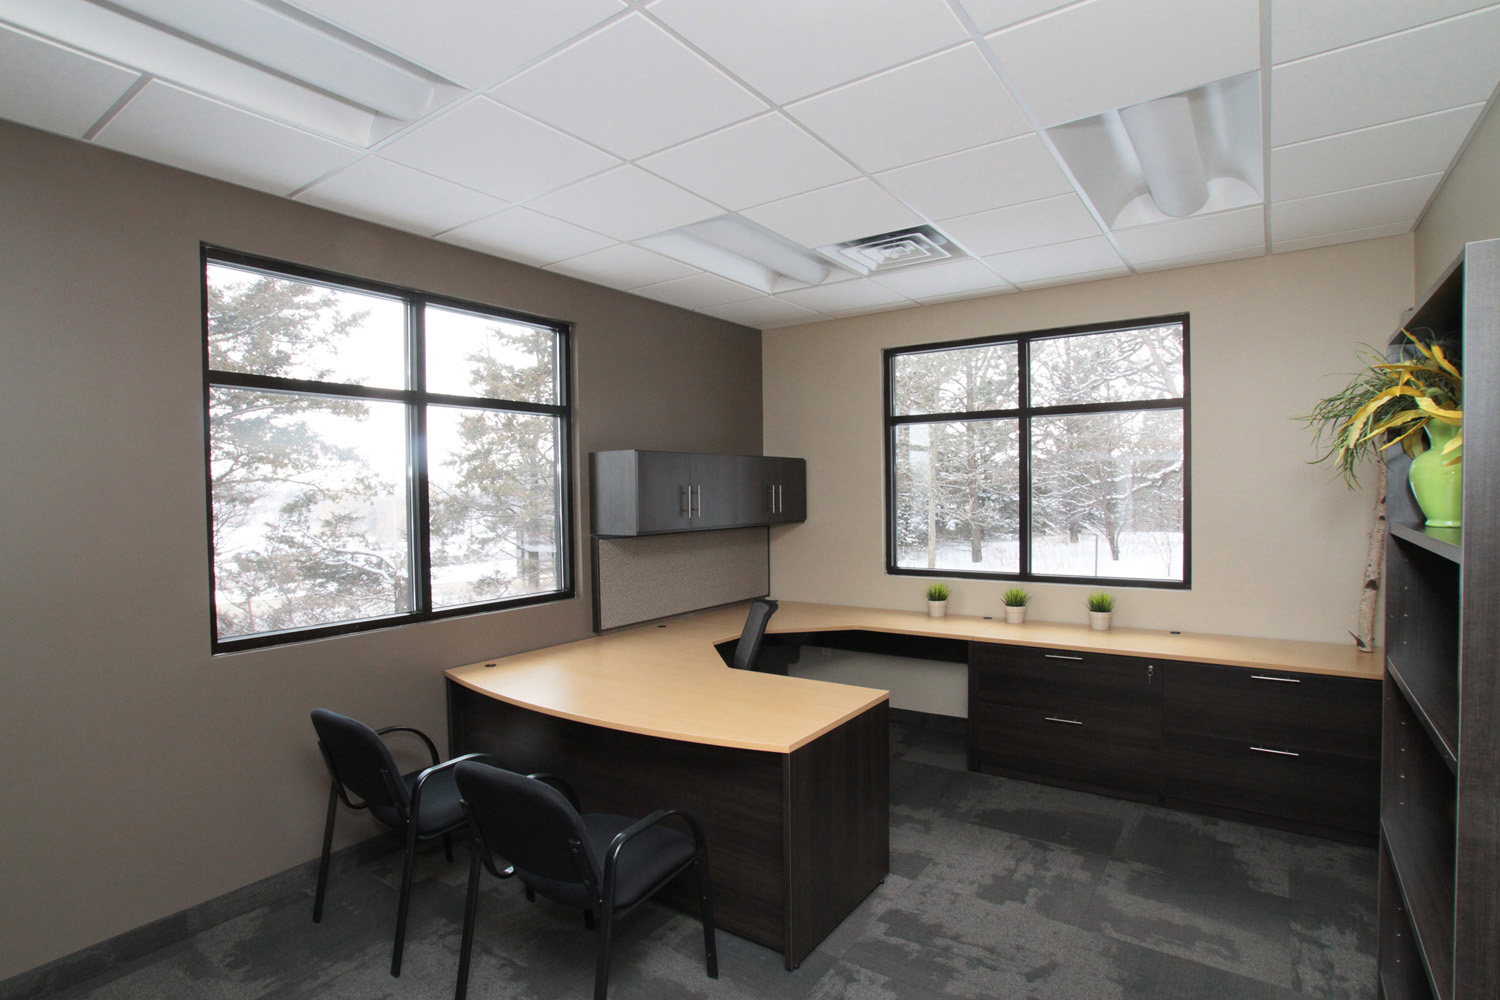 office space design mankato new used office ForOffice Space Design Companies